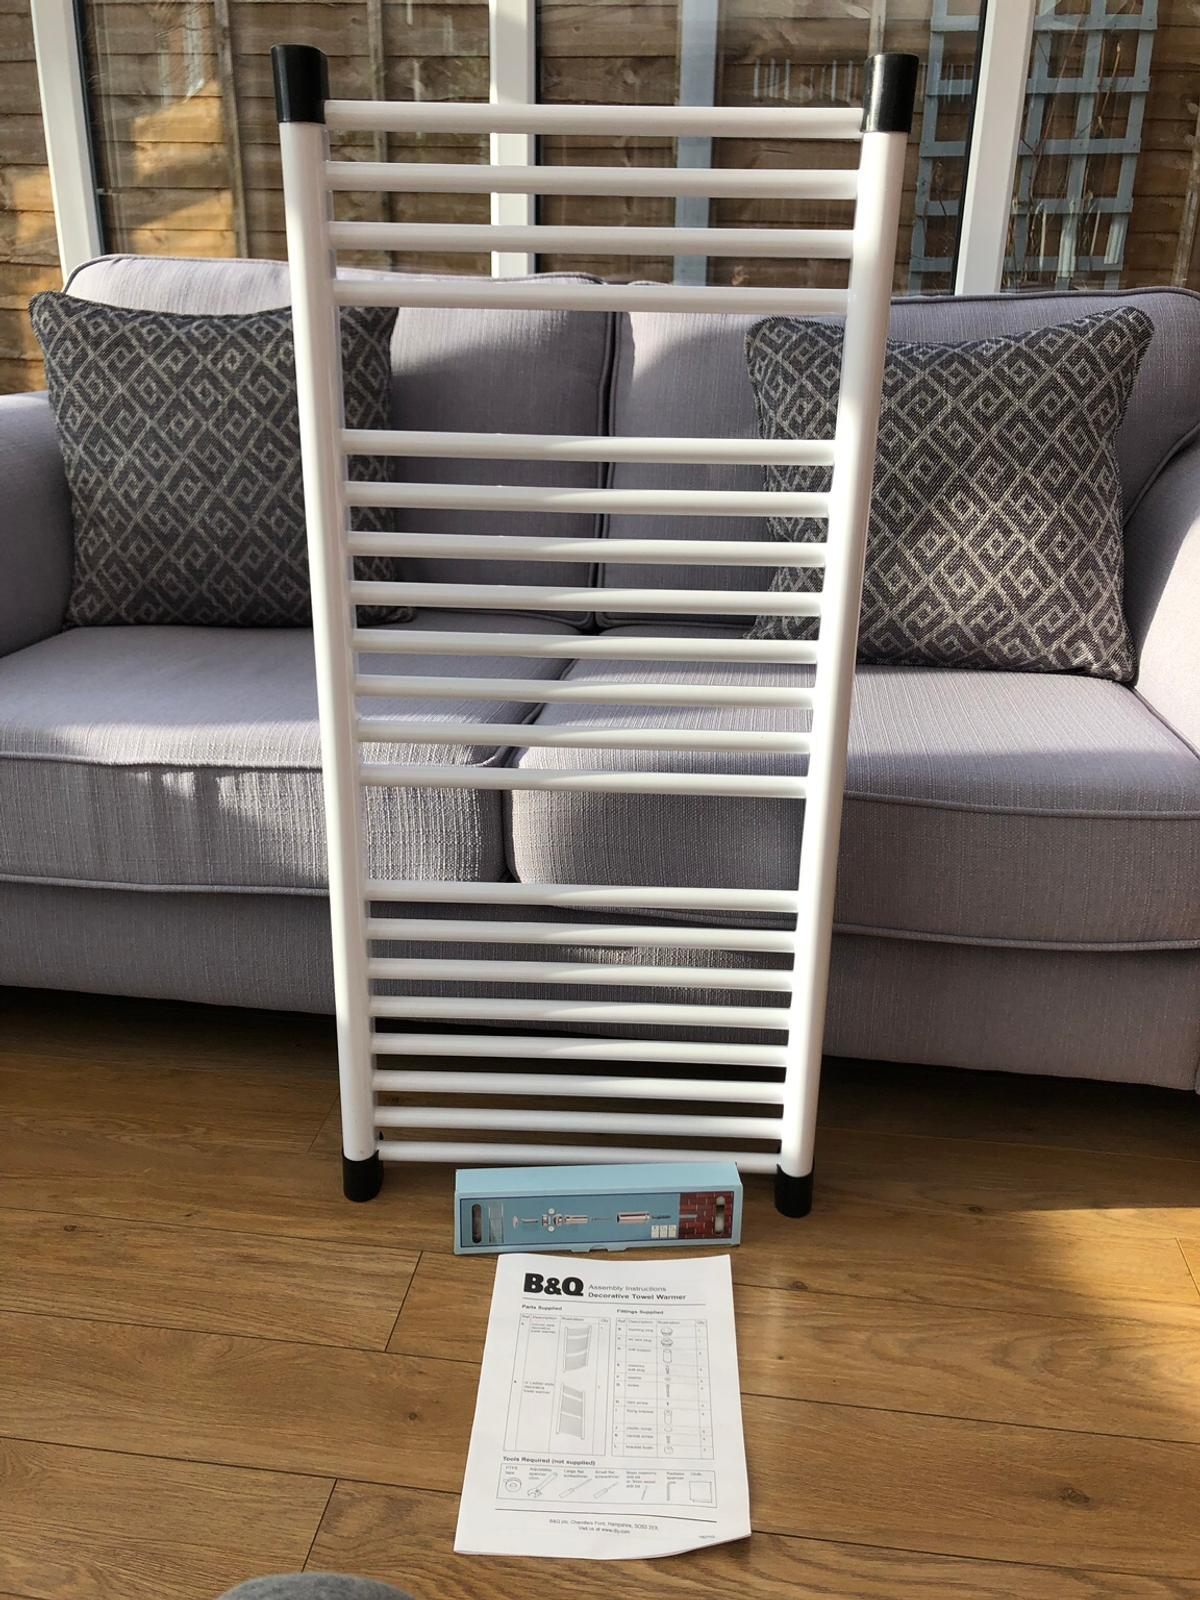 B Q Decorative Towel Warmer Radiator In Ws9 Walsall For 25 00 For Sale Shpock